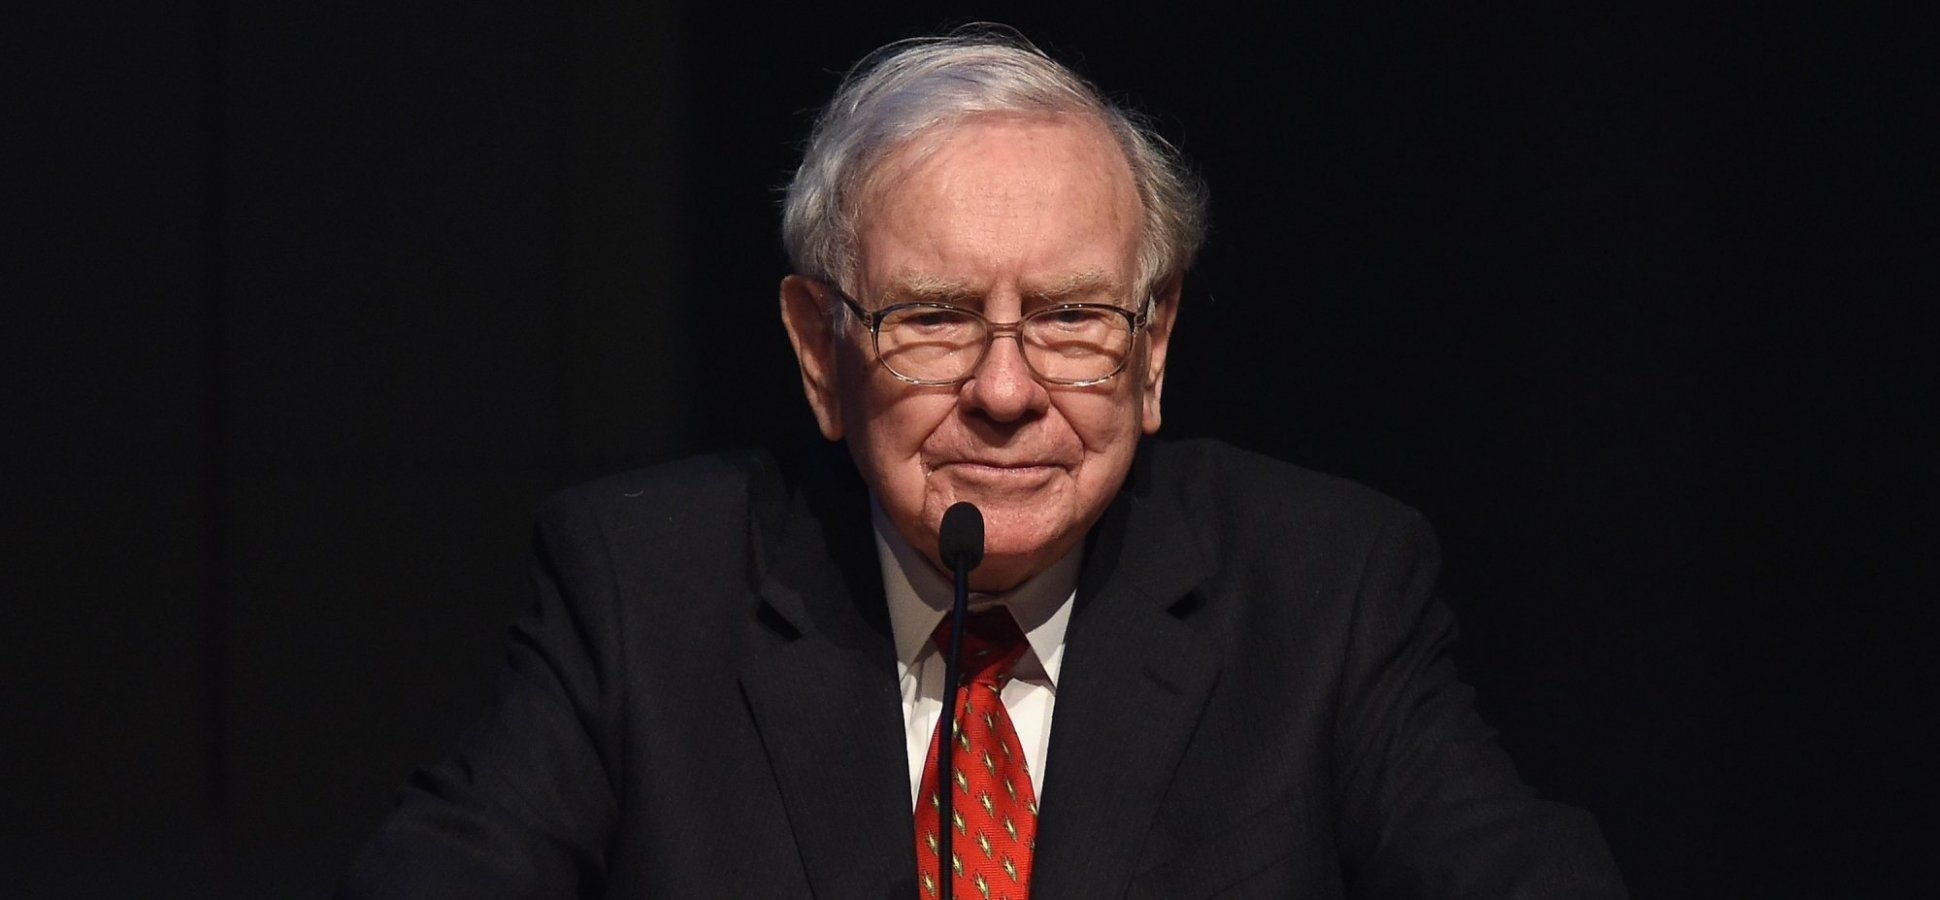 Warren Buffett Says Improving This 1 Simple Skill Will Separate You From Everyone Else (and Increase Your Worth)